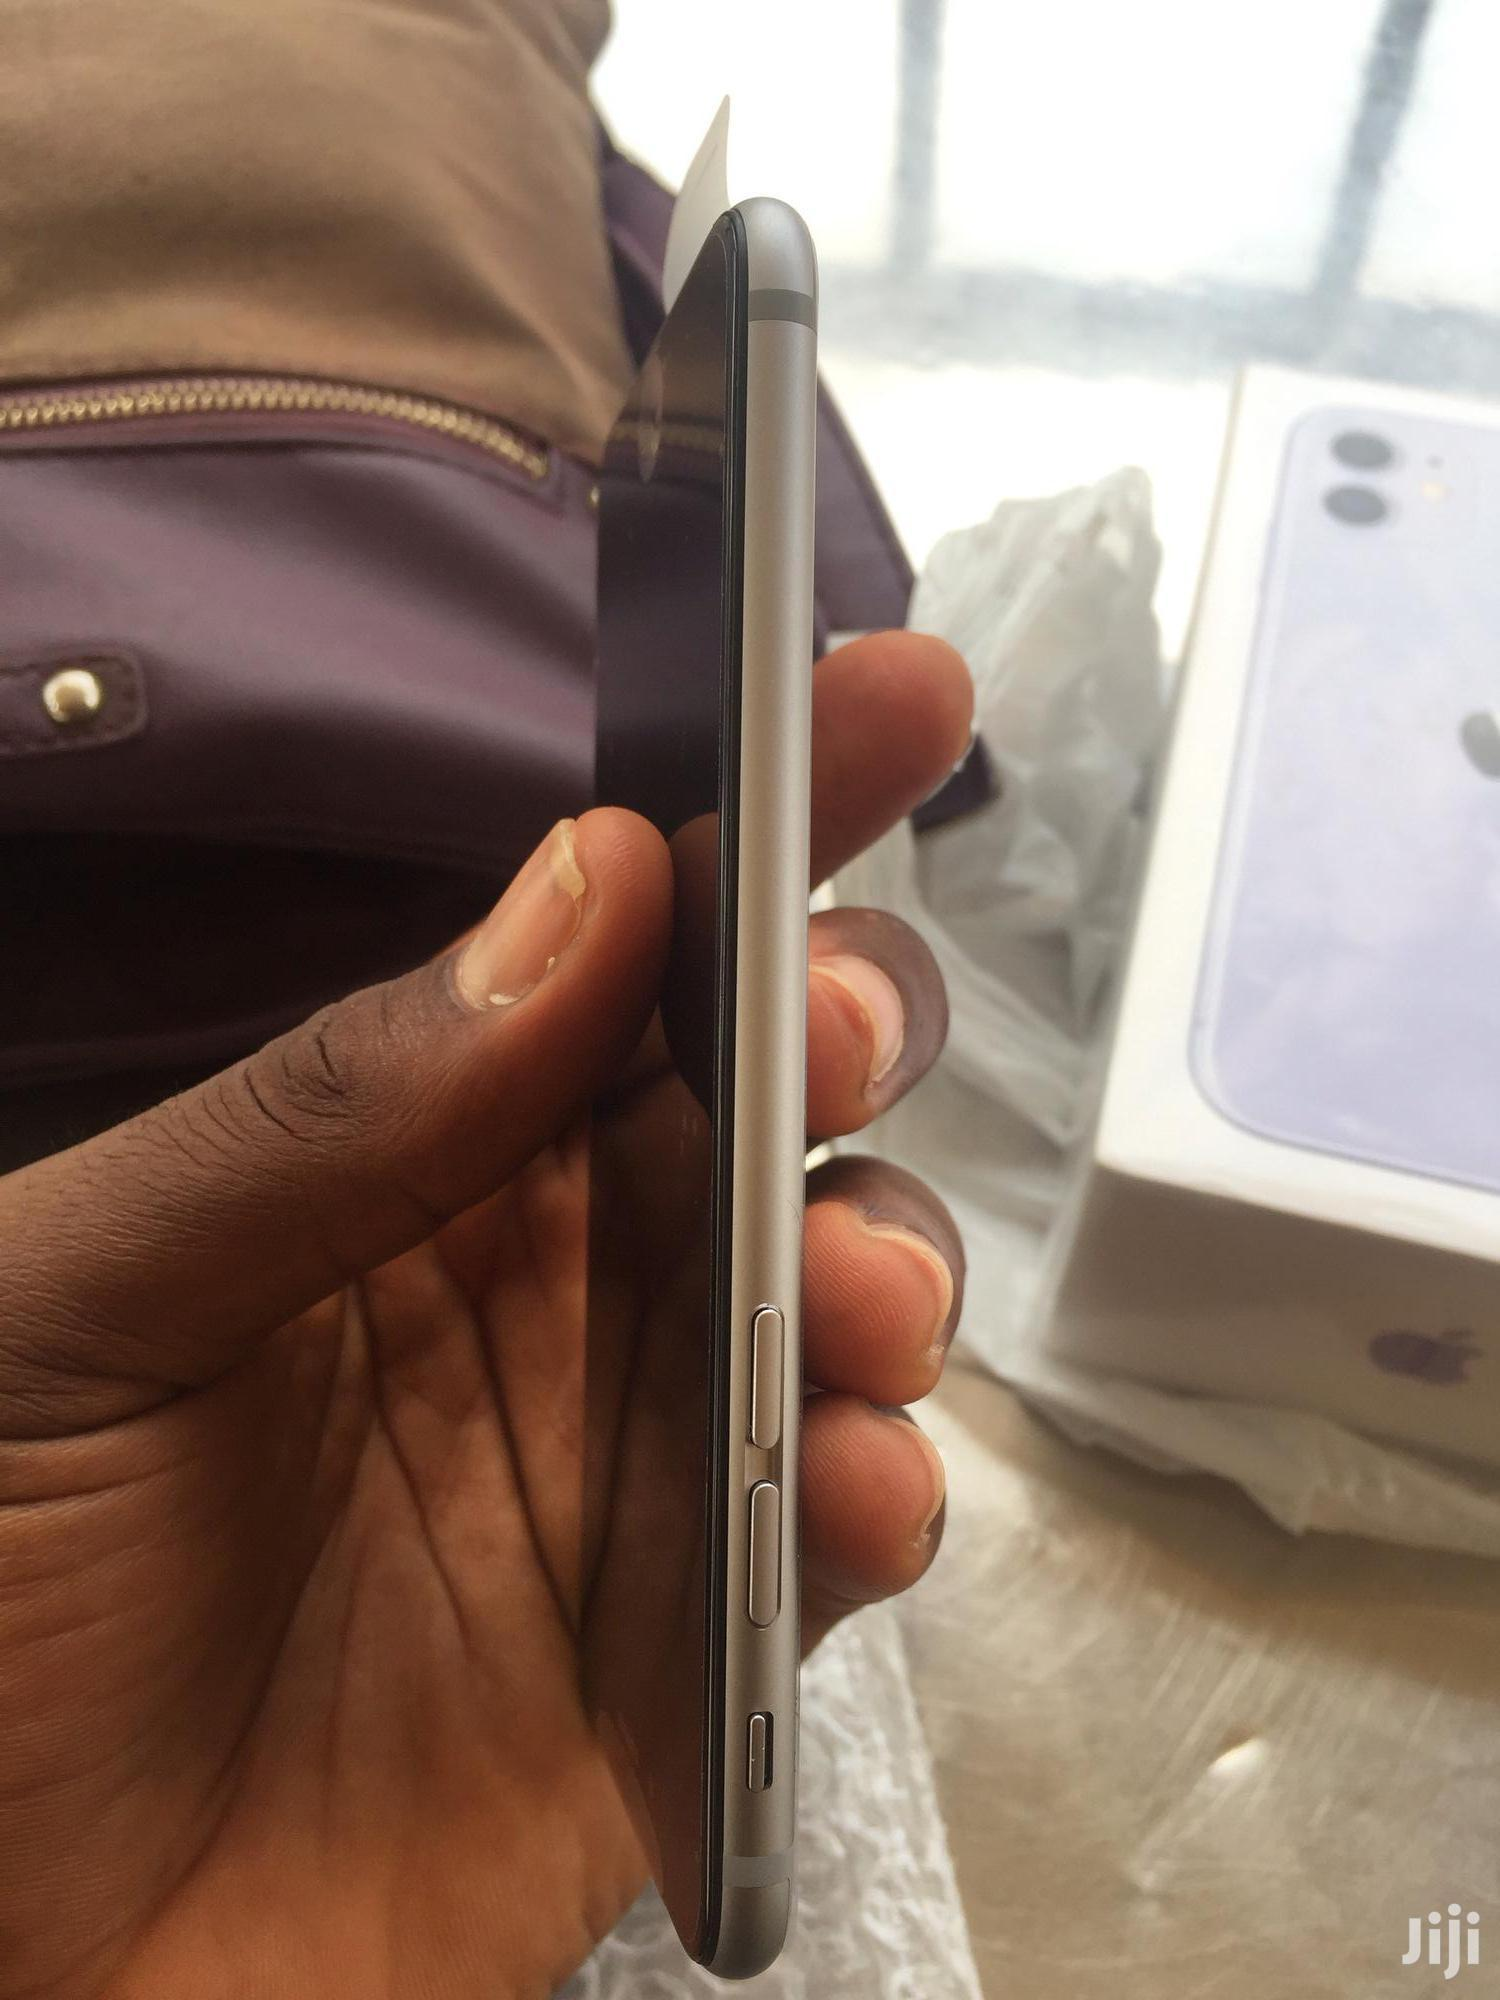 Apple iPhone 6 16 GB Gray | Mobile Phones for sale in Tema Metropolitan, Greater Accra, Ghana